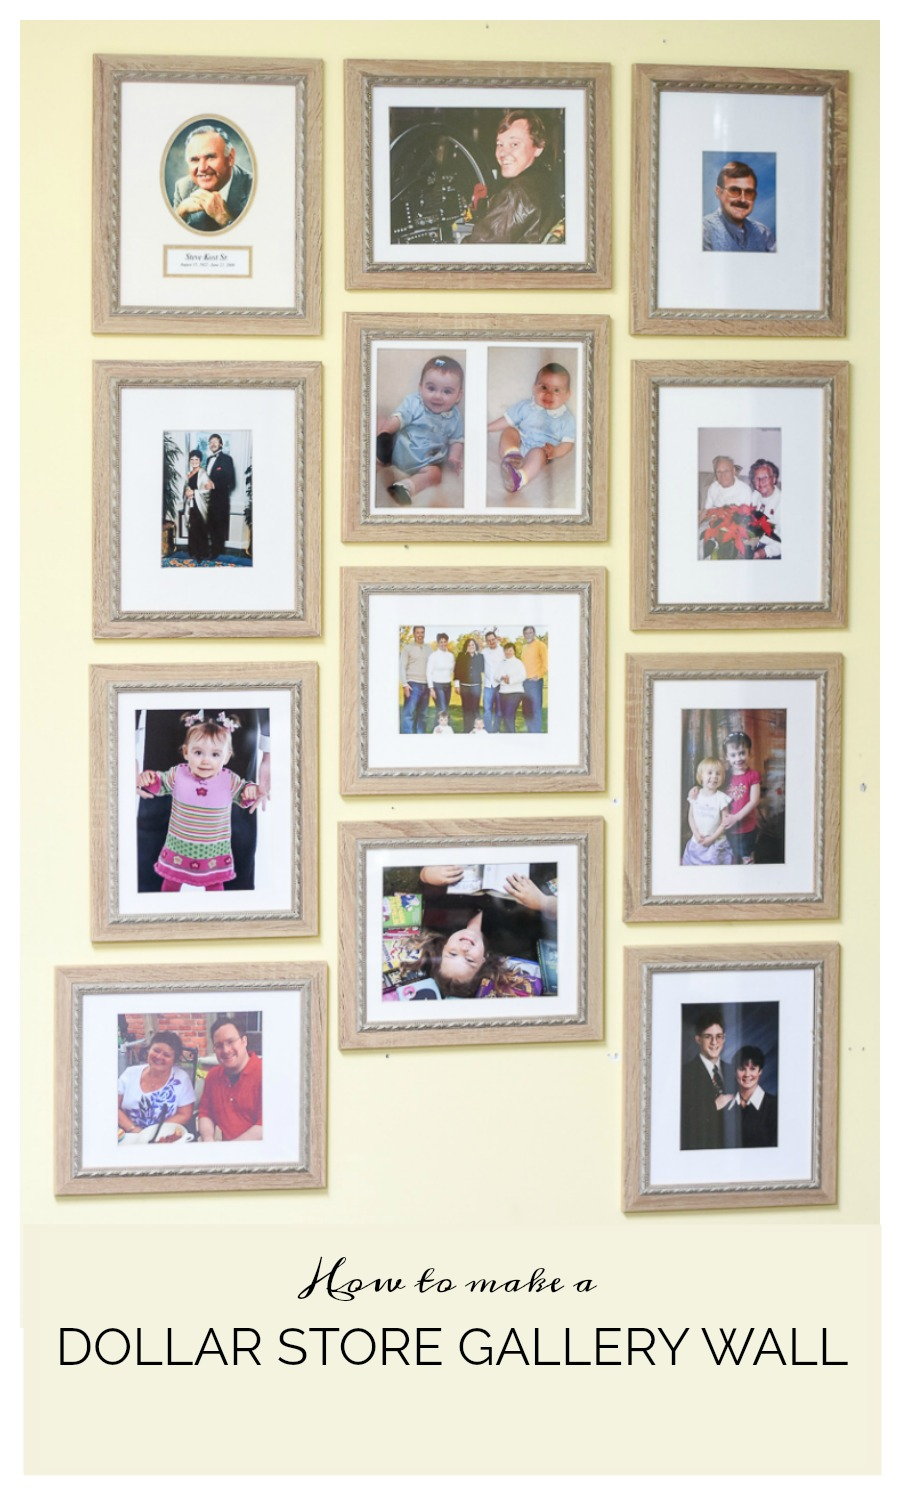 Dollar store gallery wall - how to cut your own picture mats   100 ...